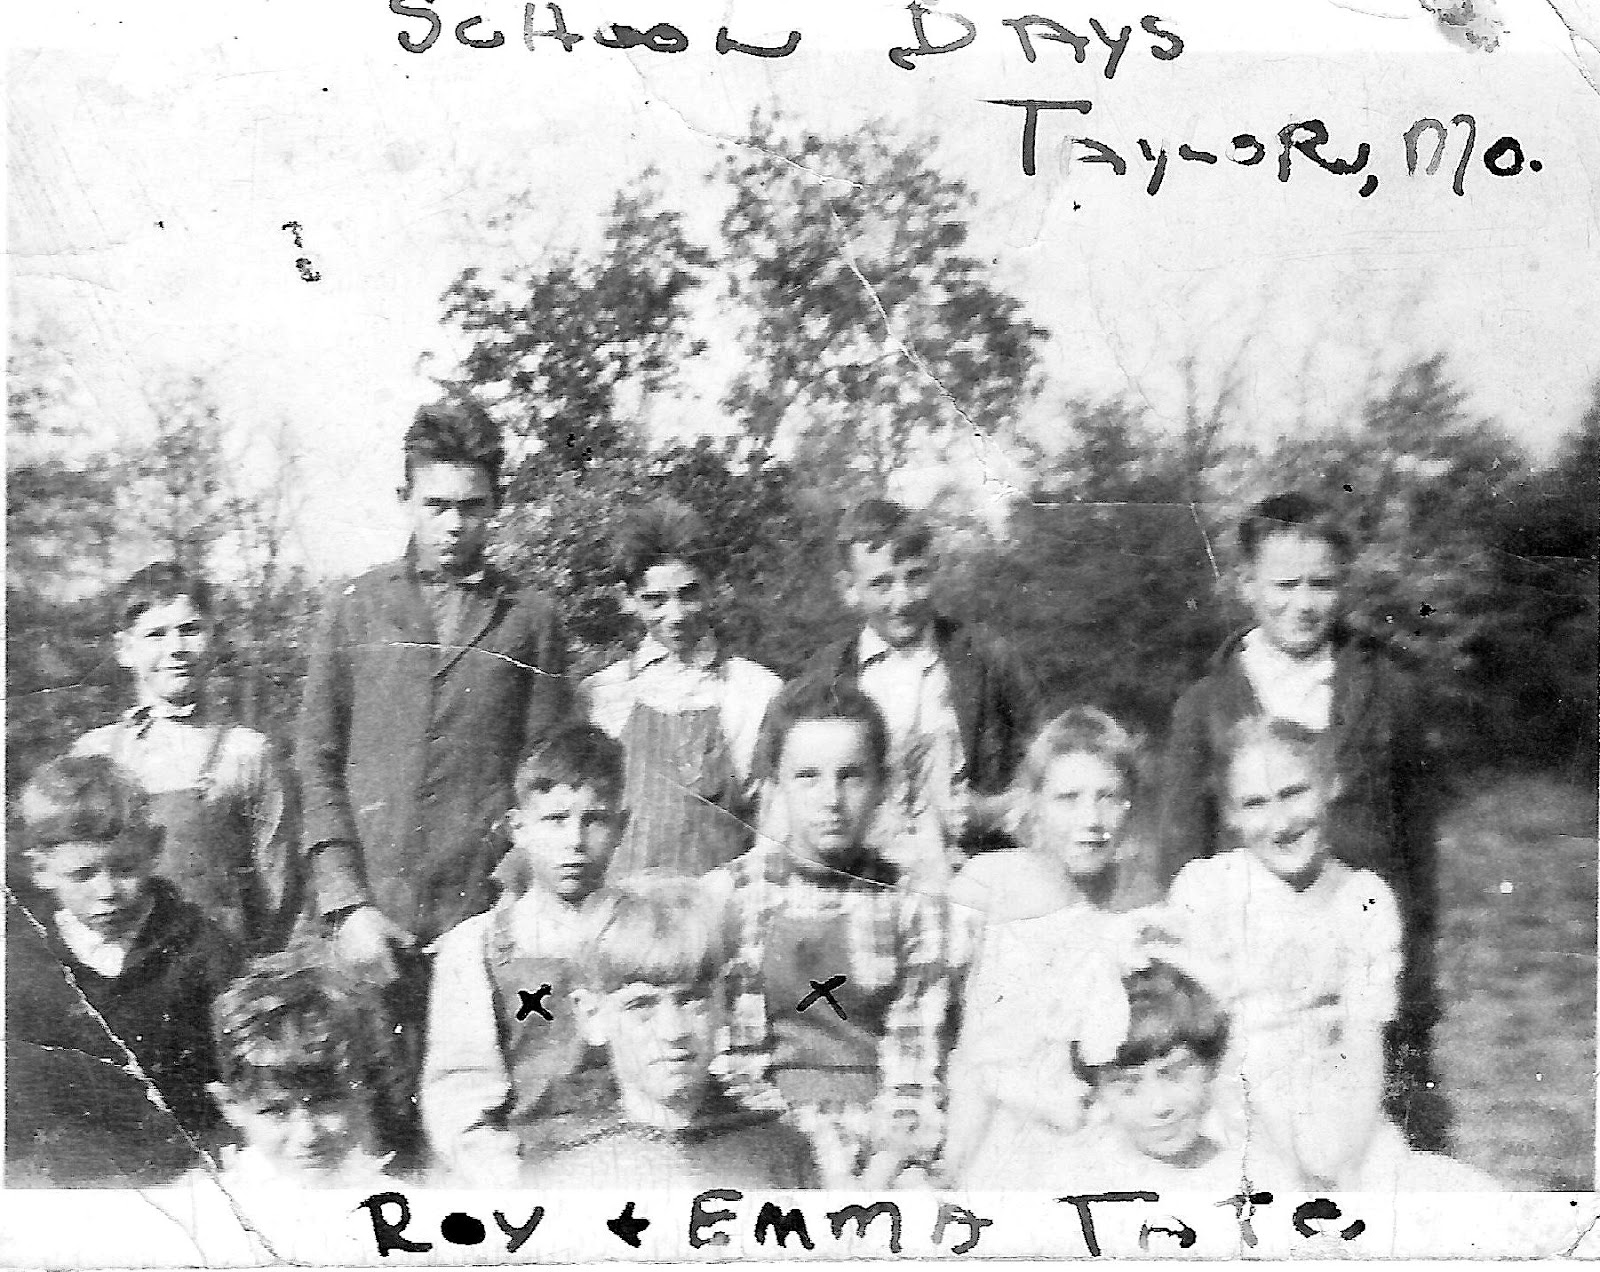 Roy and Emma Tate at Suddith School 1923.jpg